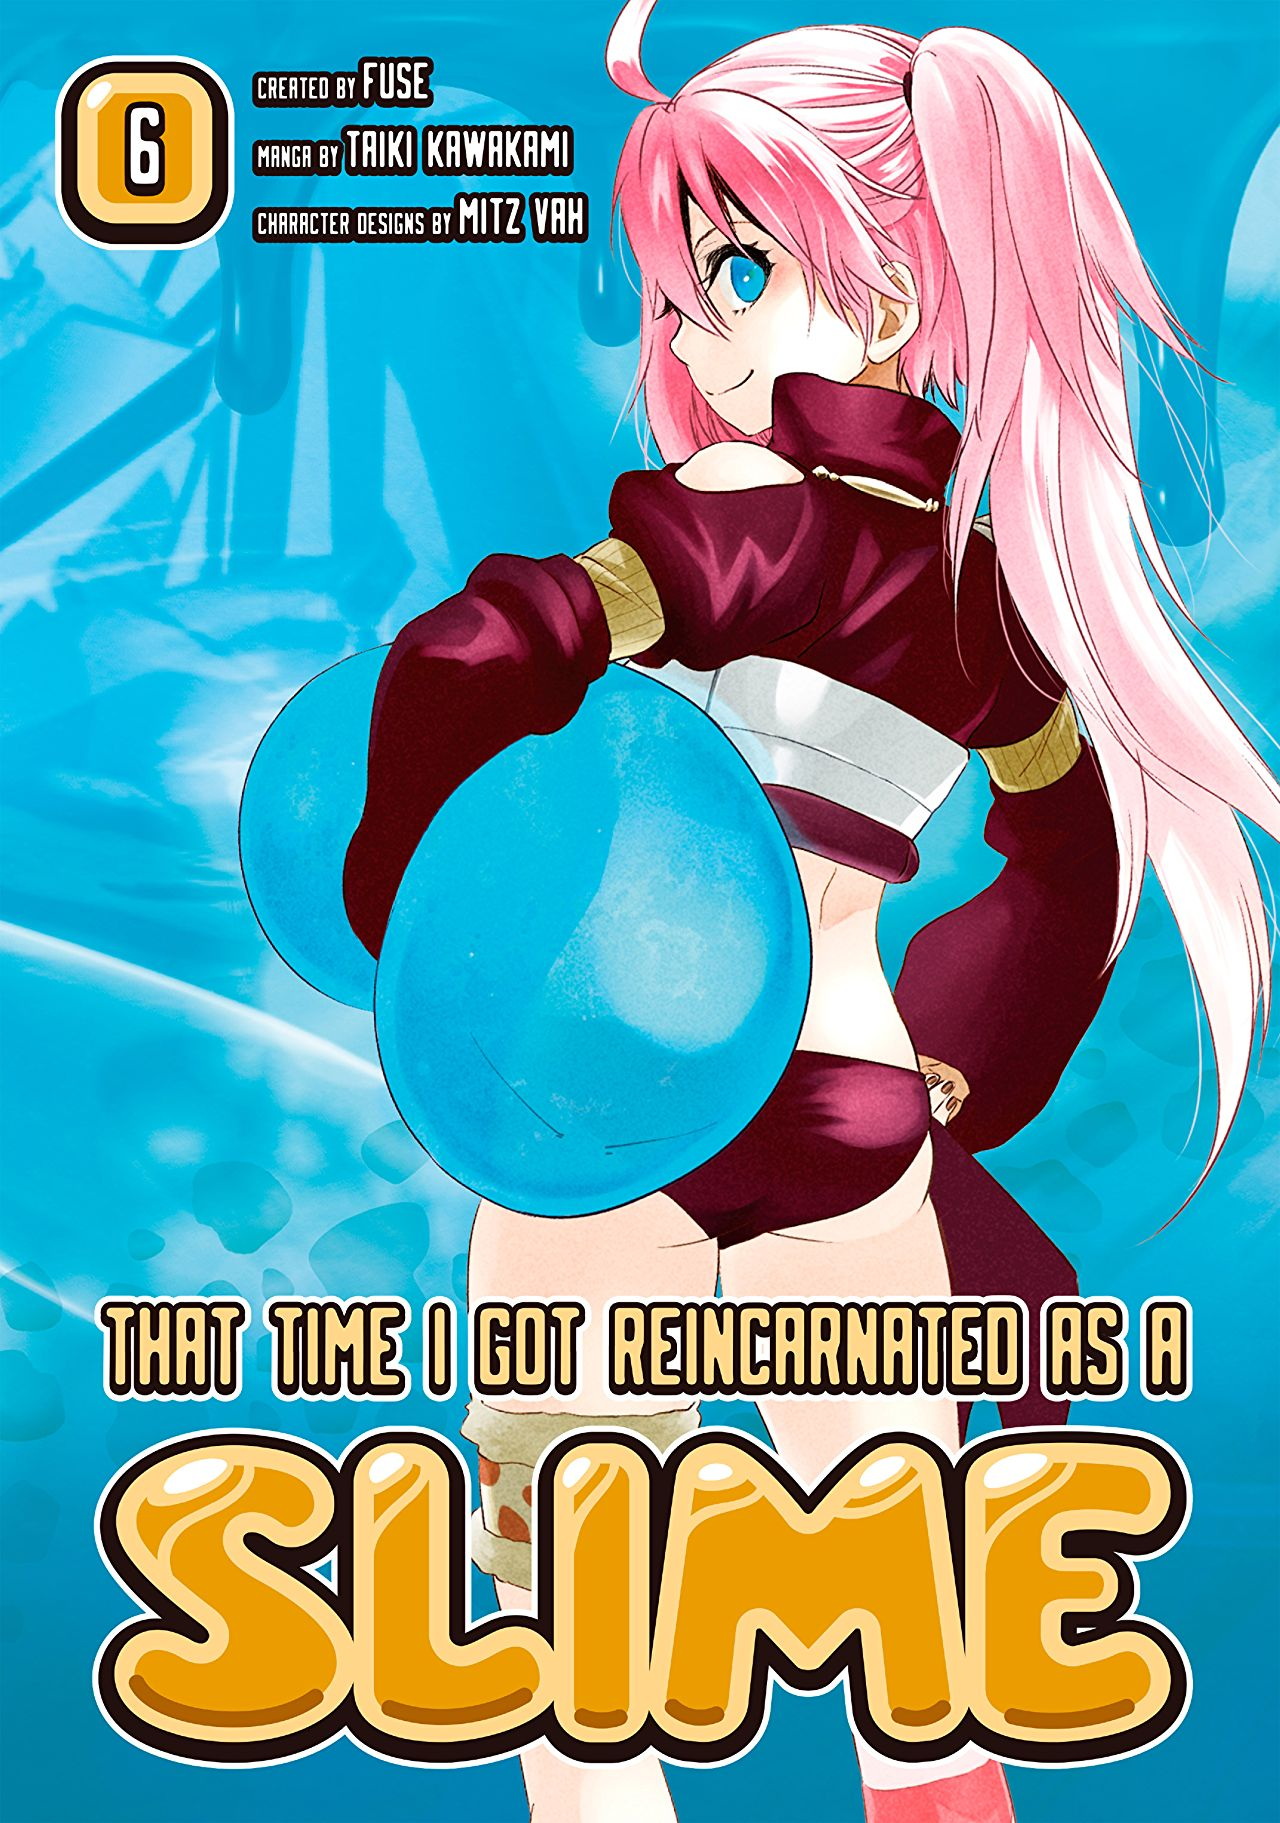 That Time I Got Reincarnated as a Slime Volume 6 Review